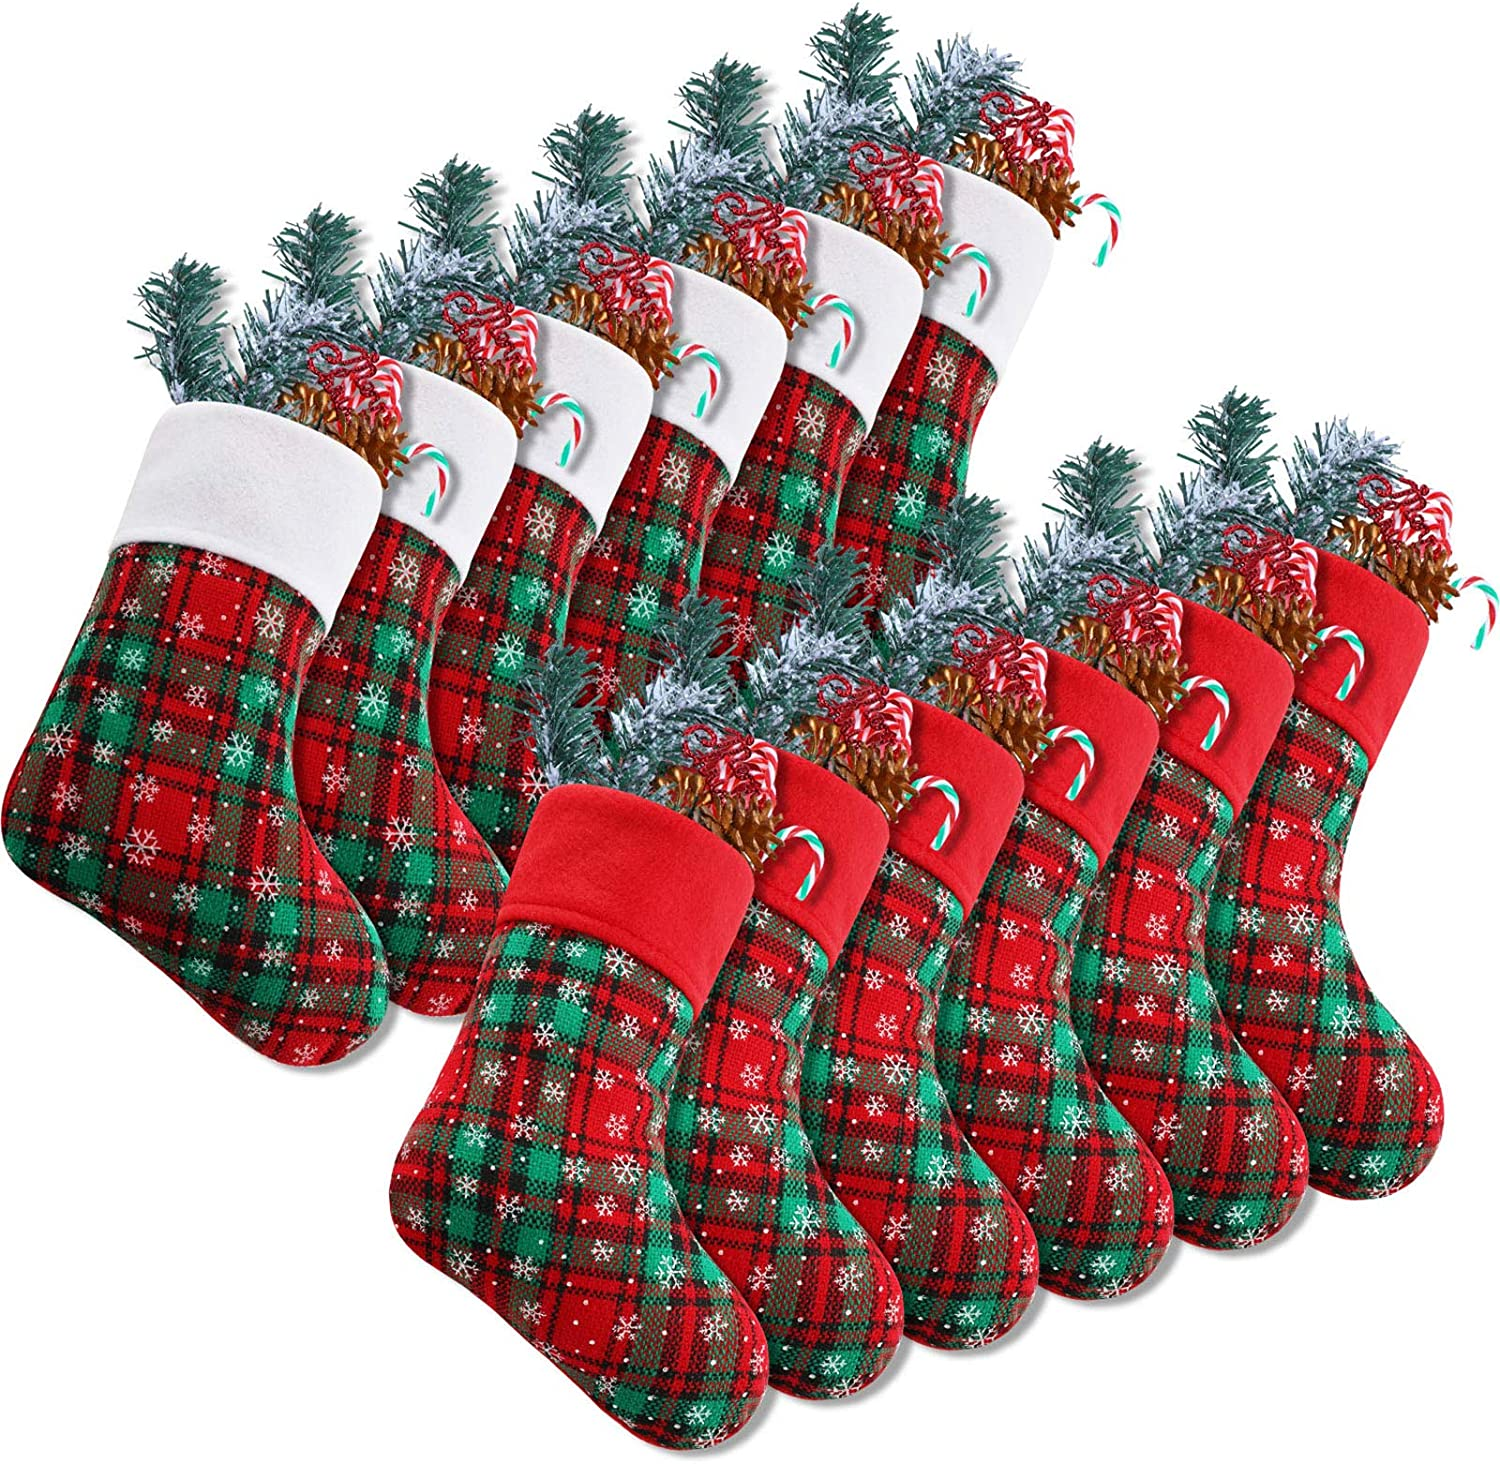 Syhood 9 Inch Christmas Mini Stockings Plaid Snowflake Christmas Stockings Christmas Hanging Stockings for Xmas Party Decorations (12)